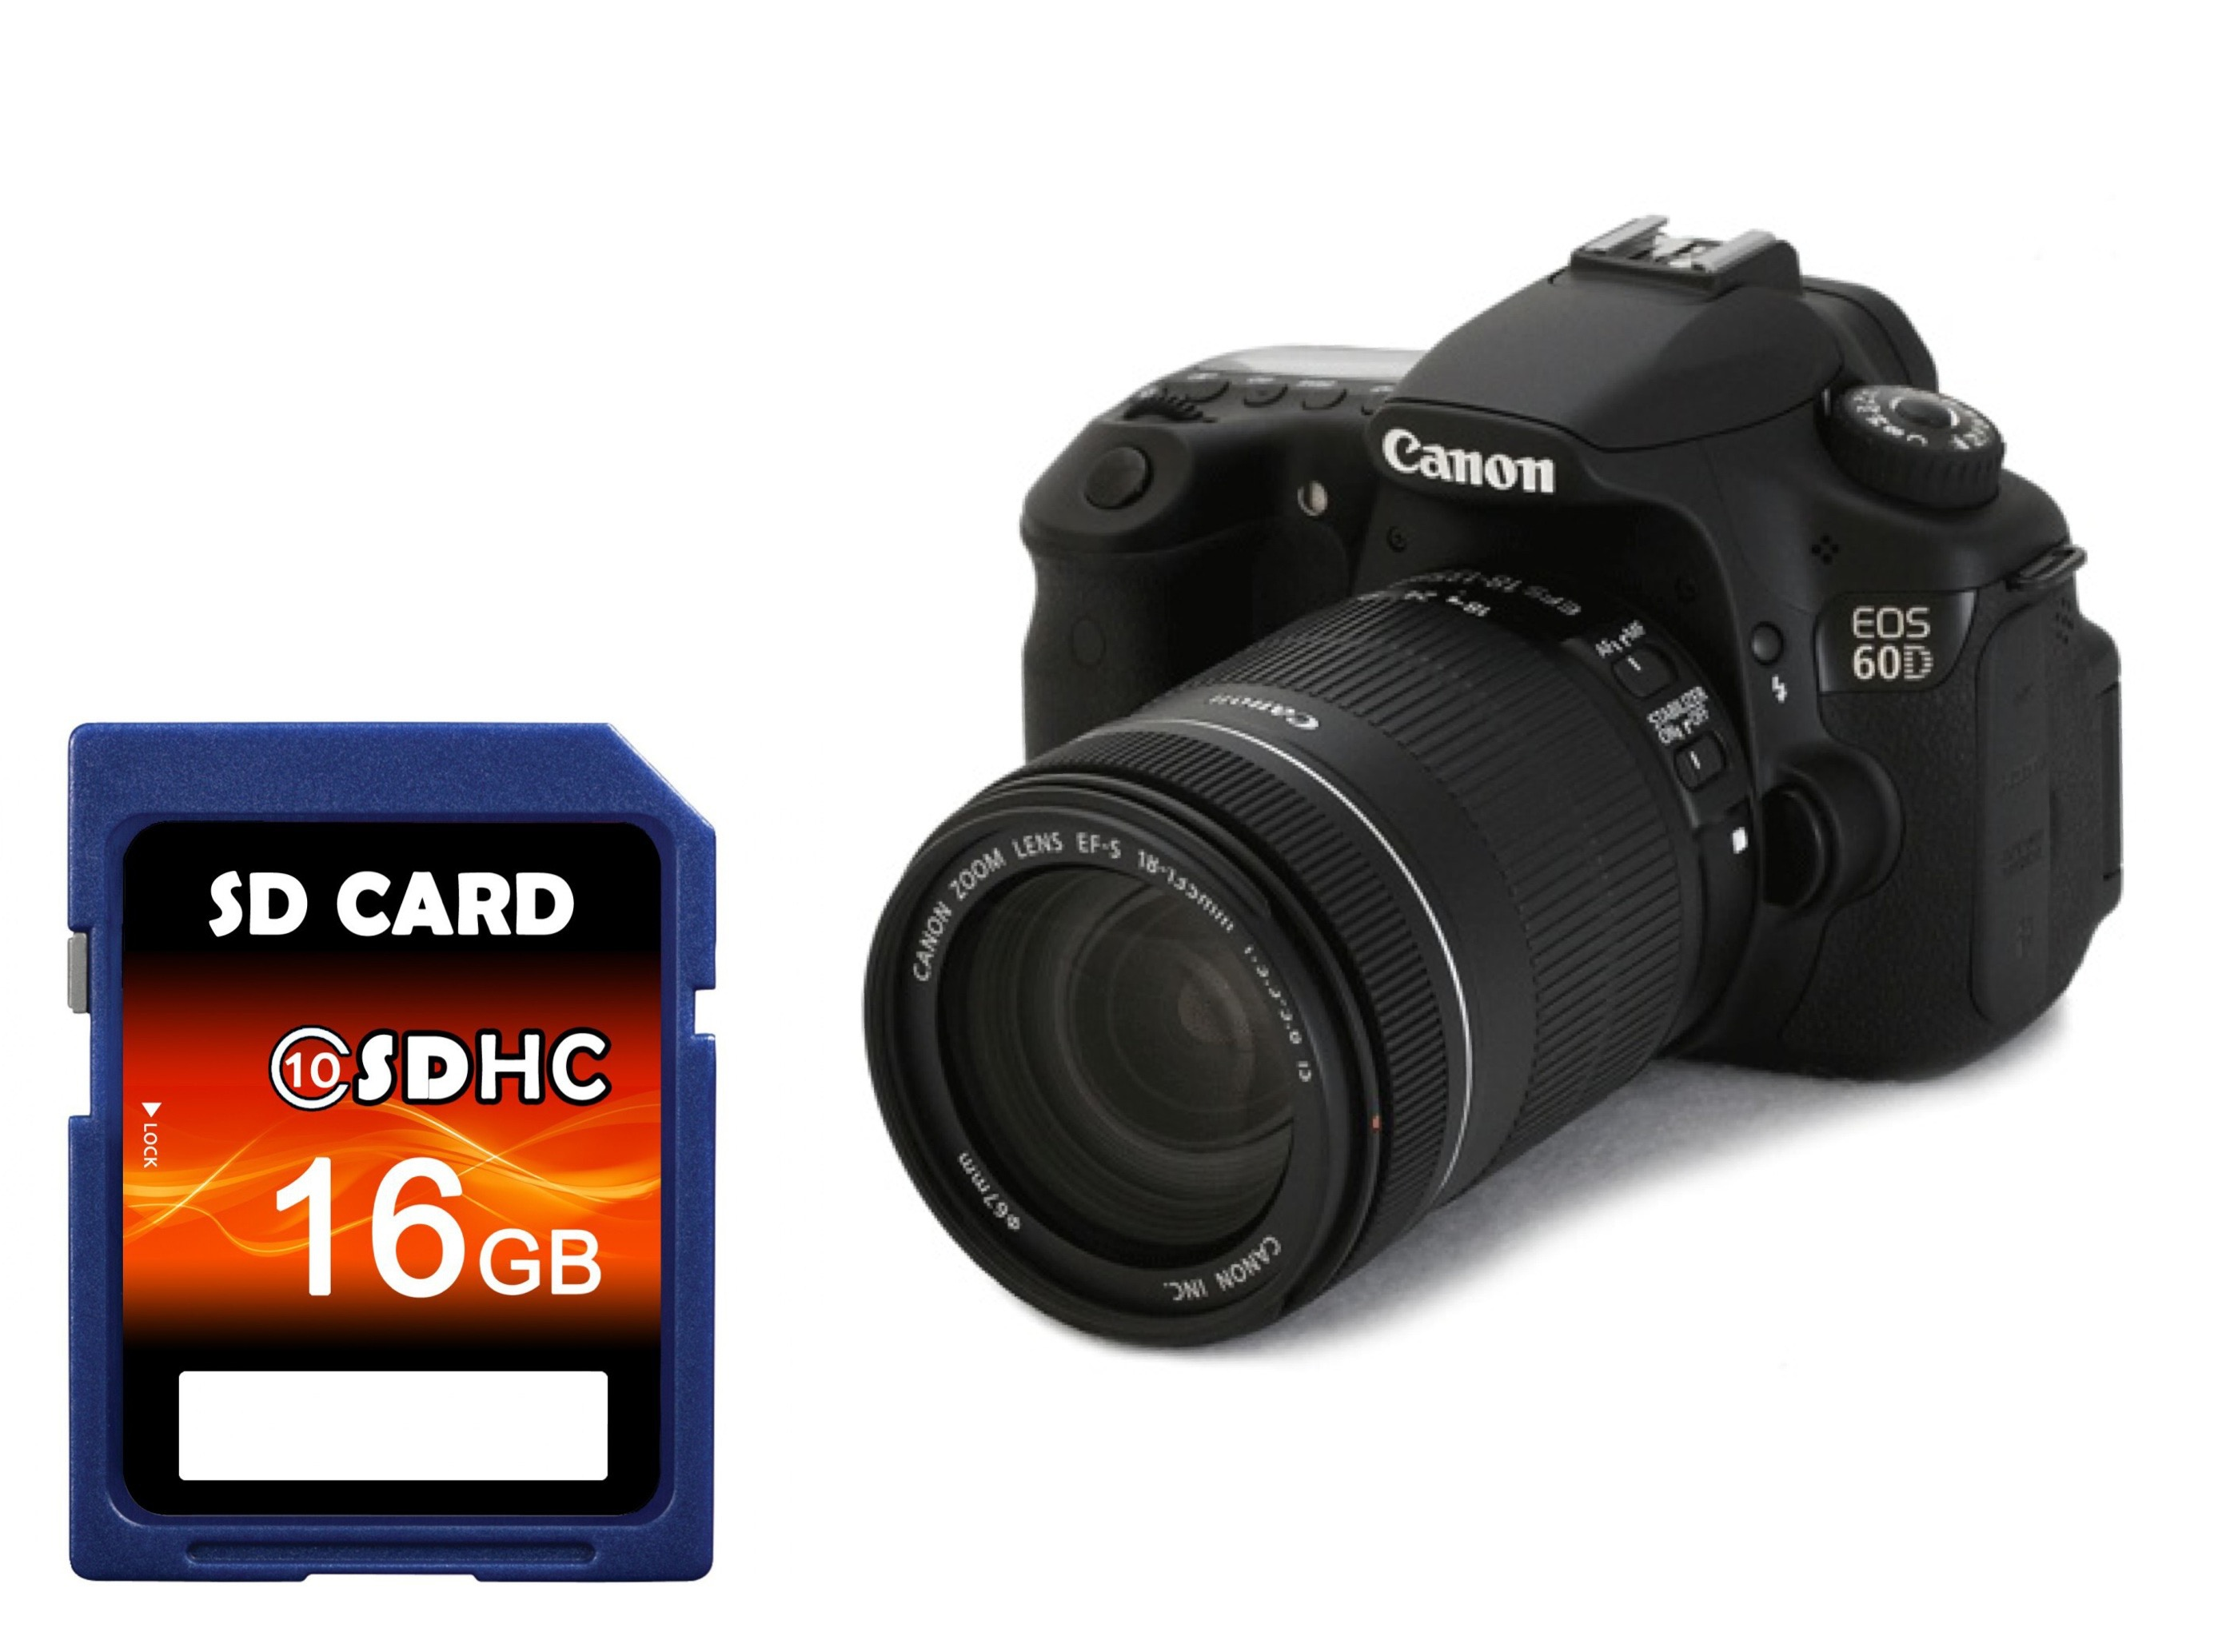 sd card for camera